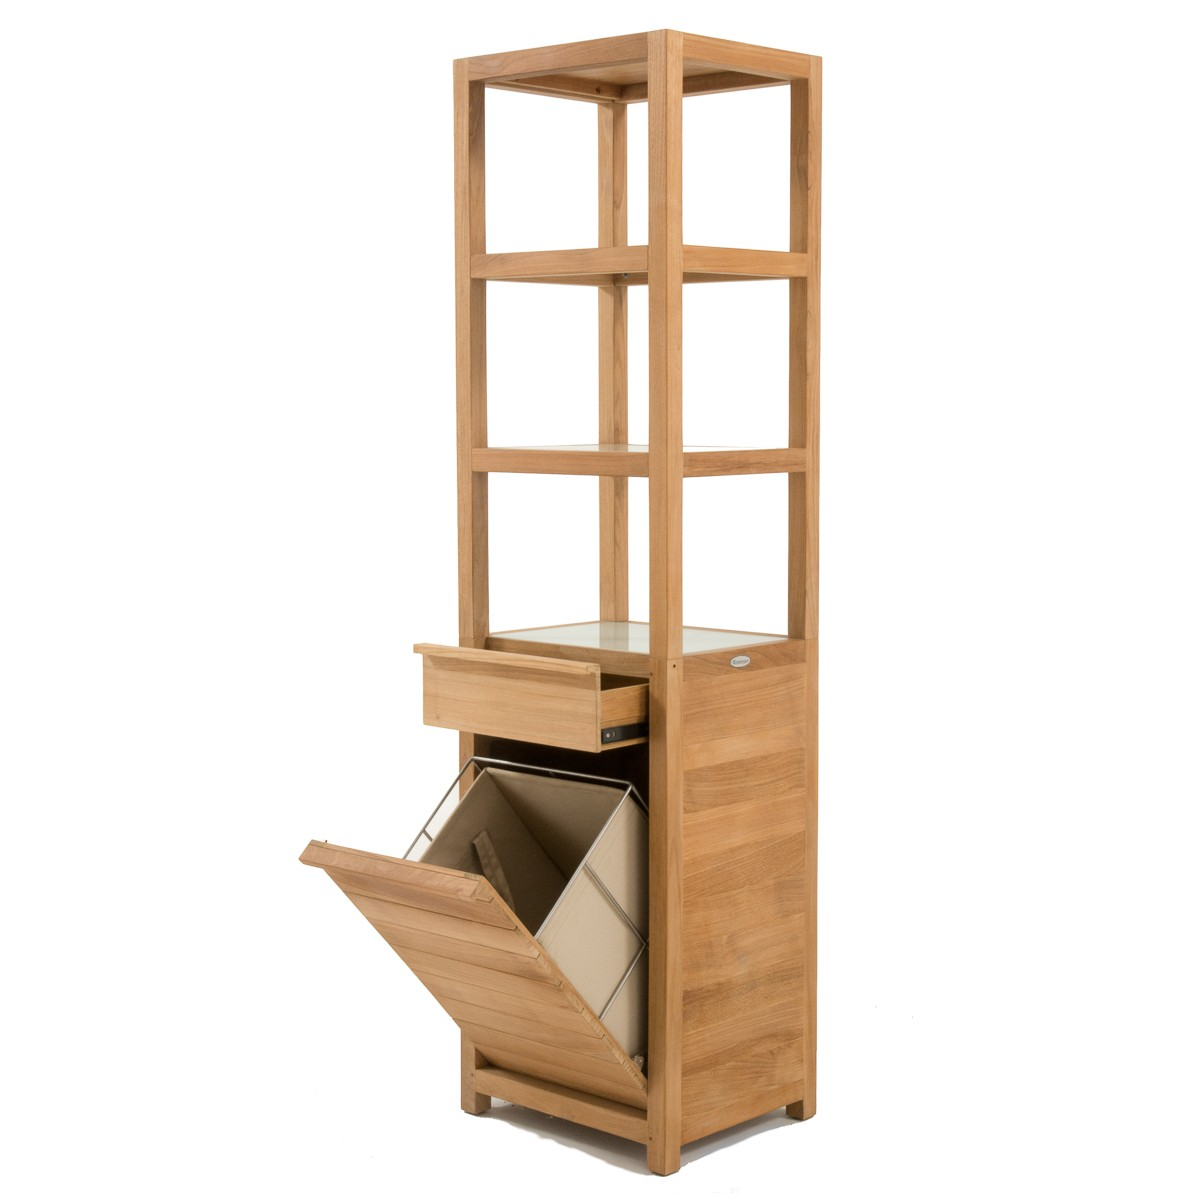 Laundry Basket With Shelves Pacifica Teak Laundry Hamper And Shelf Westminster Teak